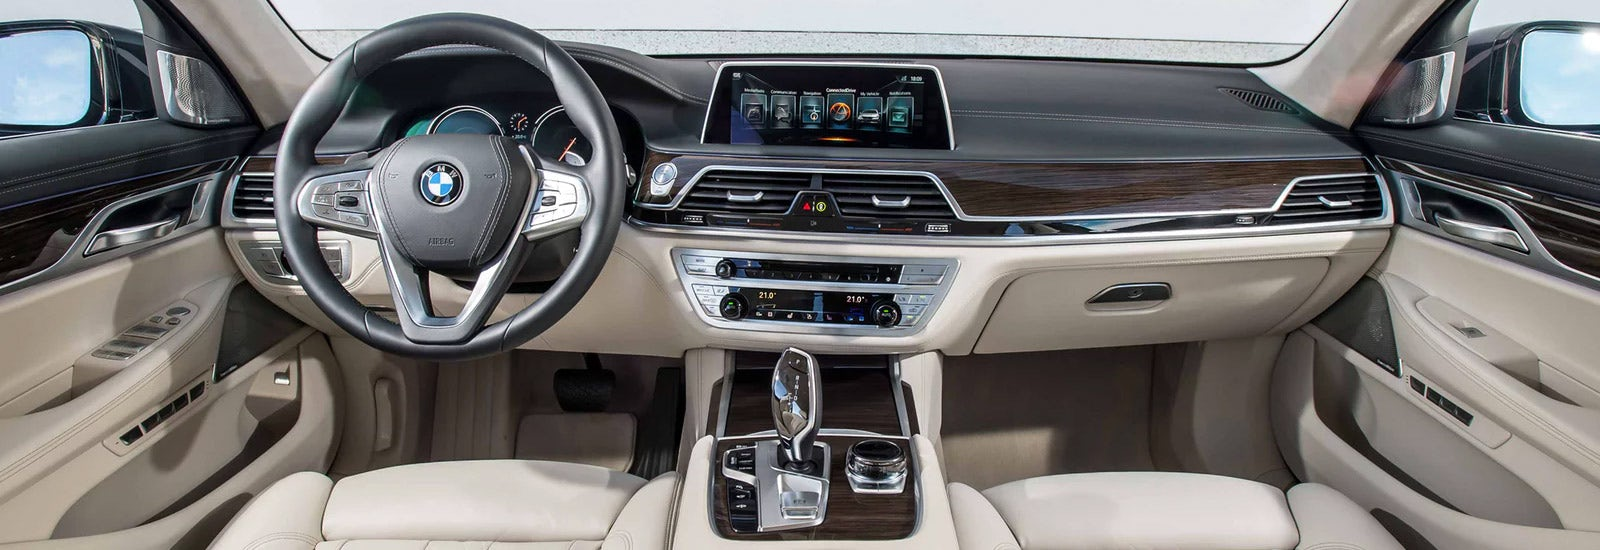 2018 bmw 7 series price specs release date carwow. Black Bedroom Furniture Sets. Home Design Ideas